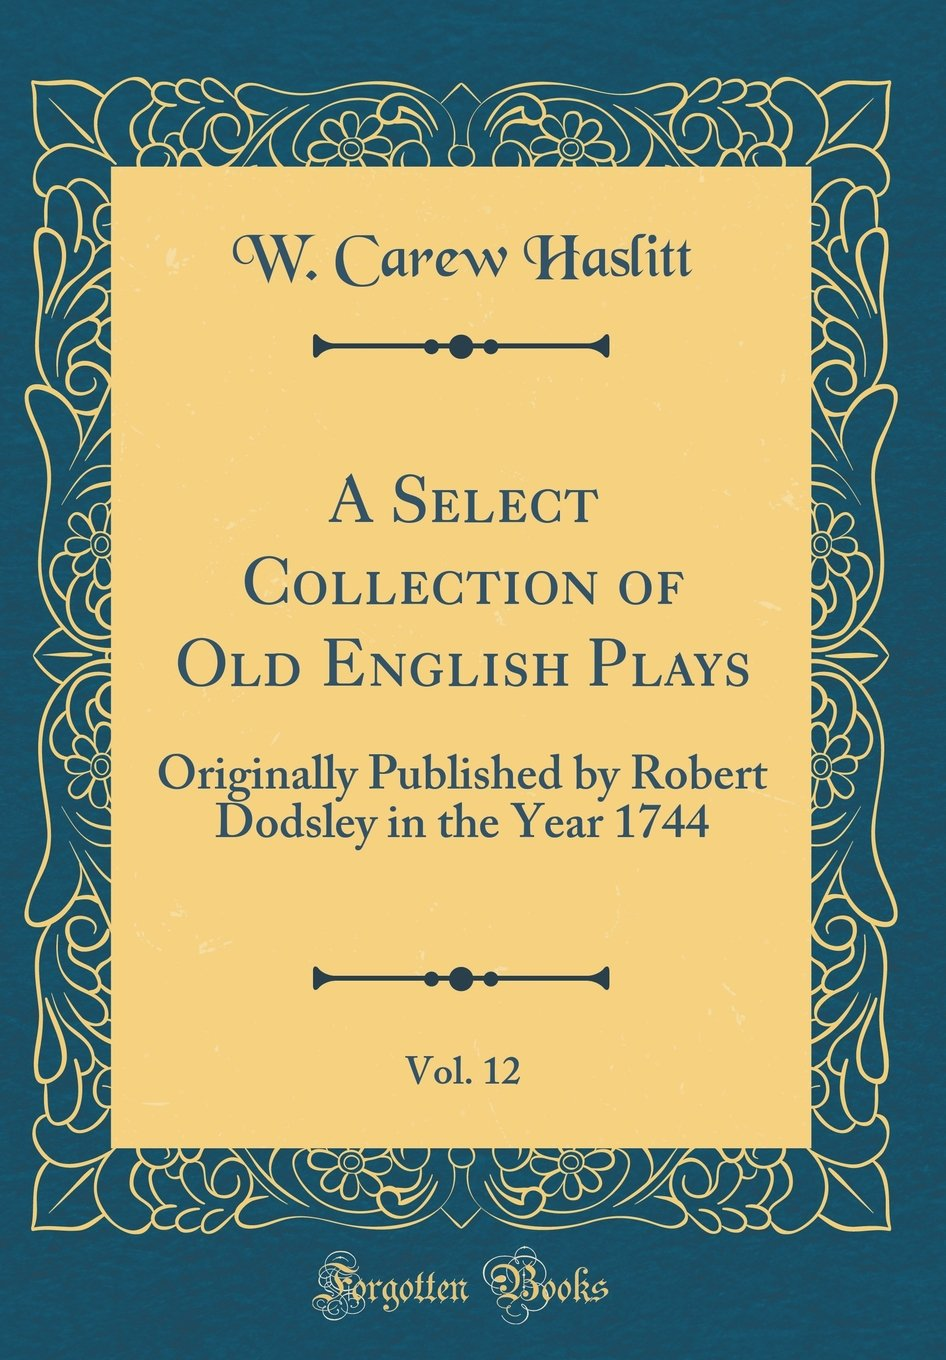 Download A Select Collection of Old English Plays, Vol. 12: Originally Published by Robert Dodsley in the Year 1744 (Classic Reprint) PDF